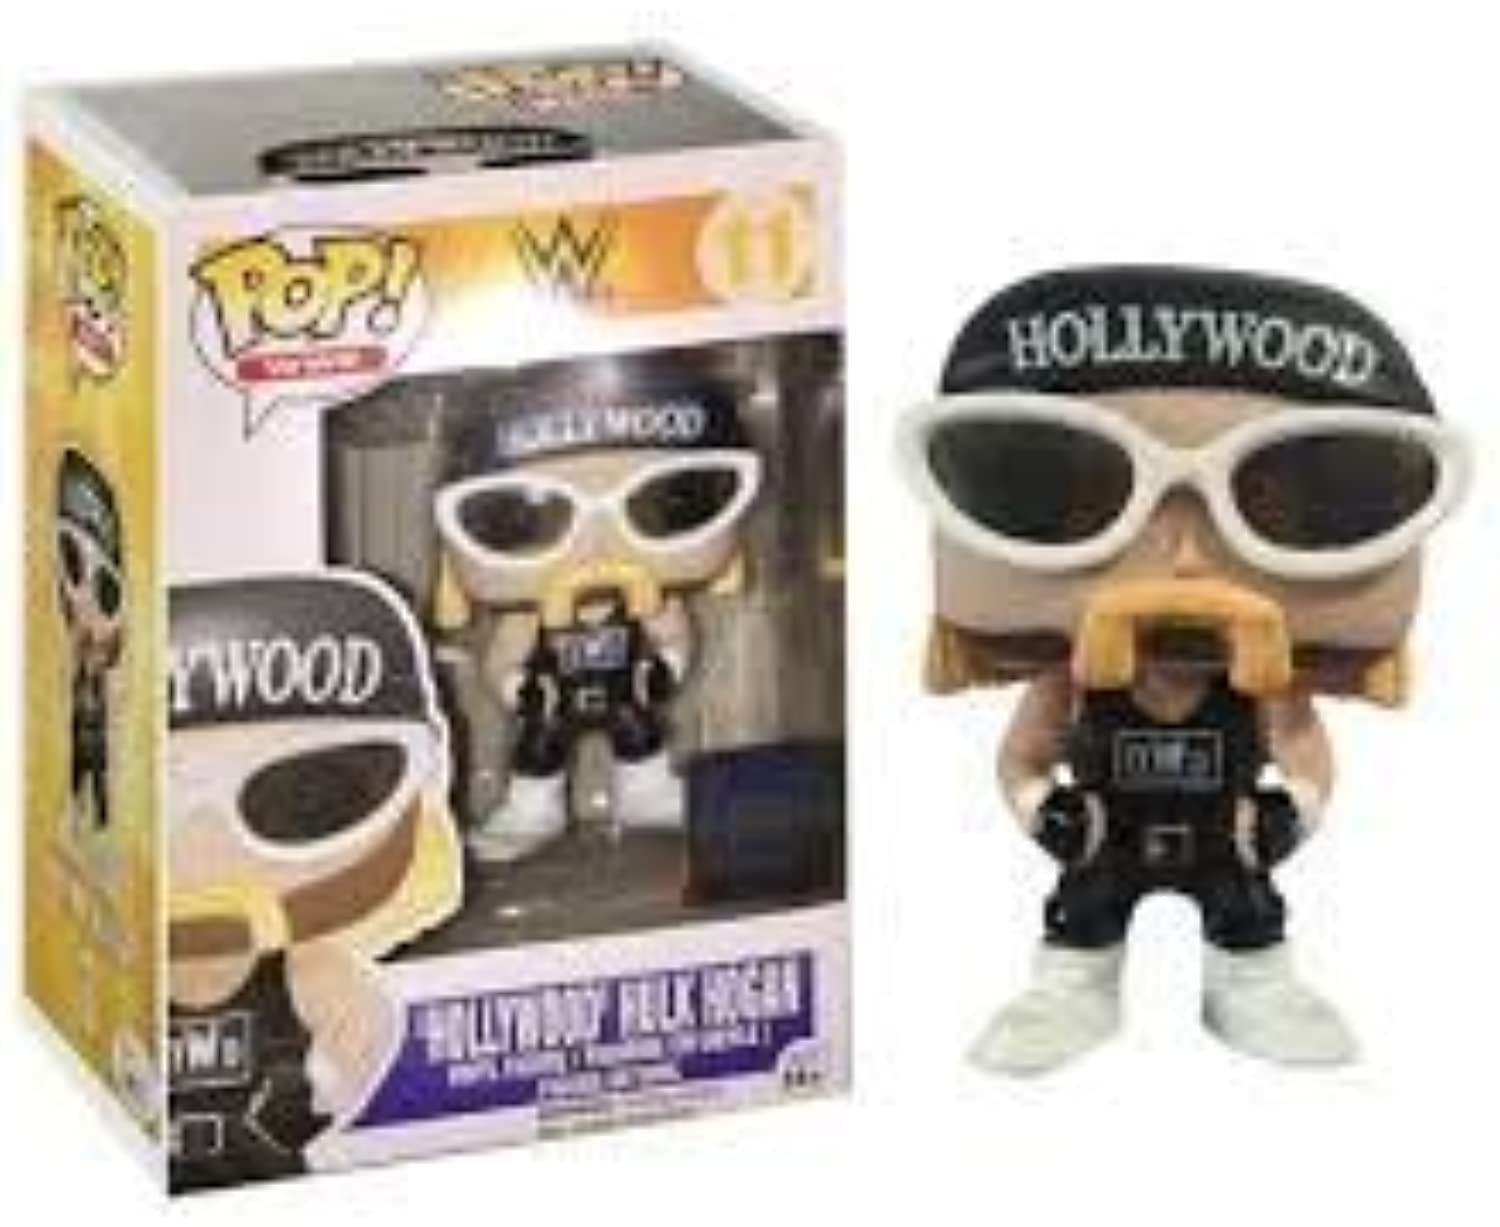 estilo clásico Funko Funko Funko POP  Hulk Hollywood Hogan WWE 2K15 Exclusive Figura by OPP  cómodo